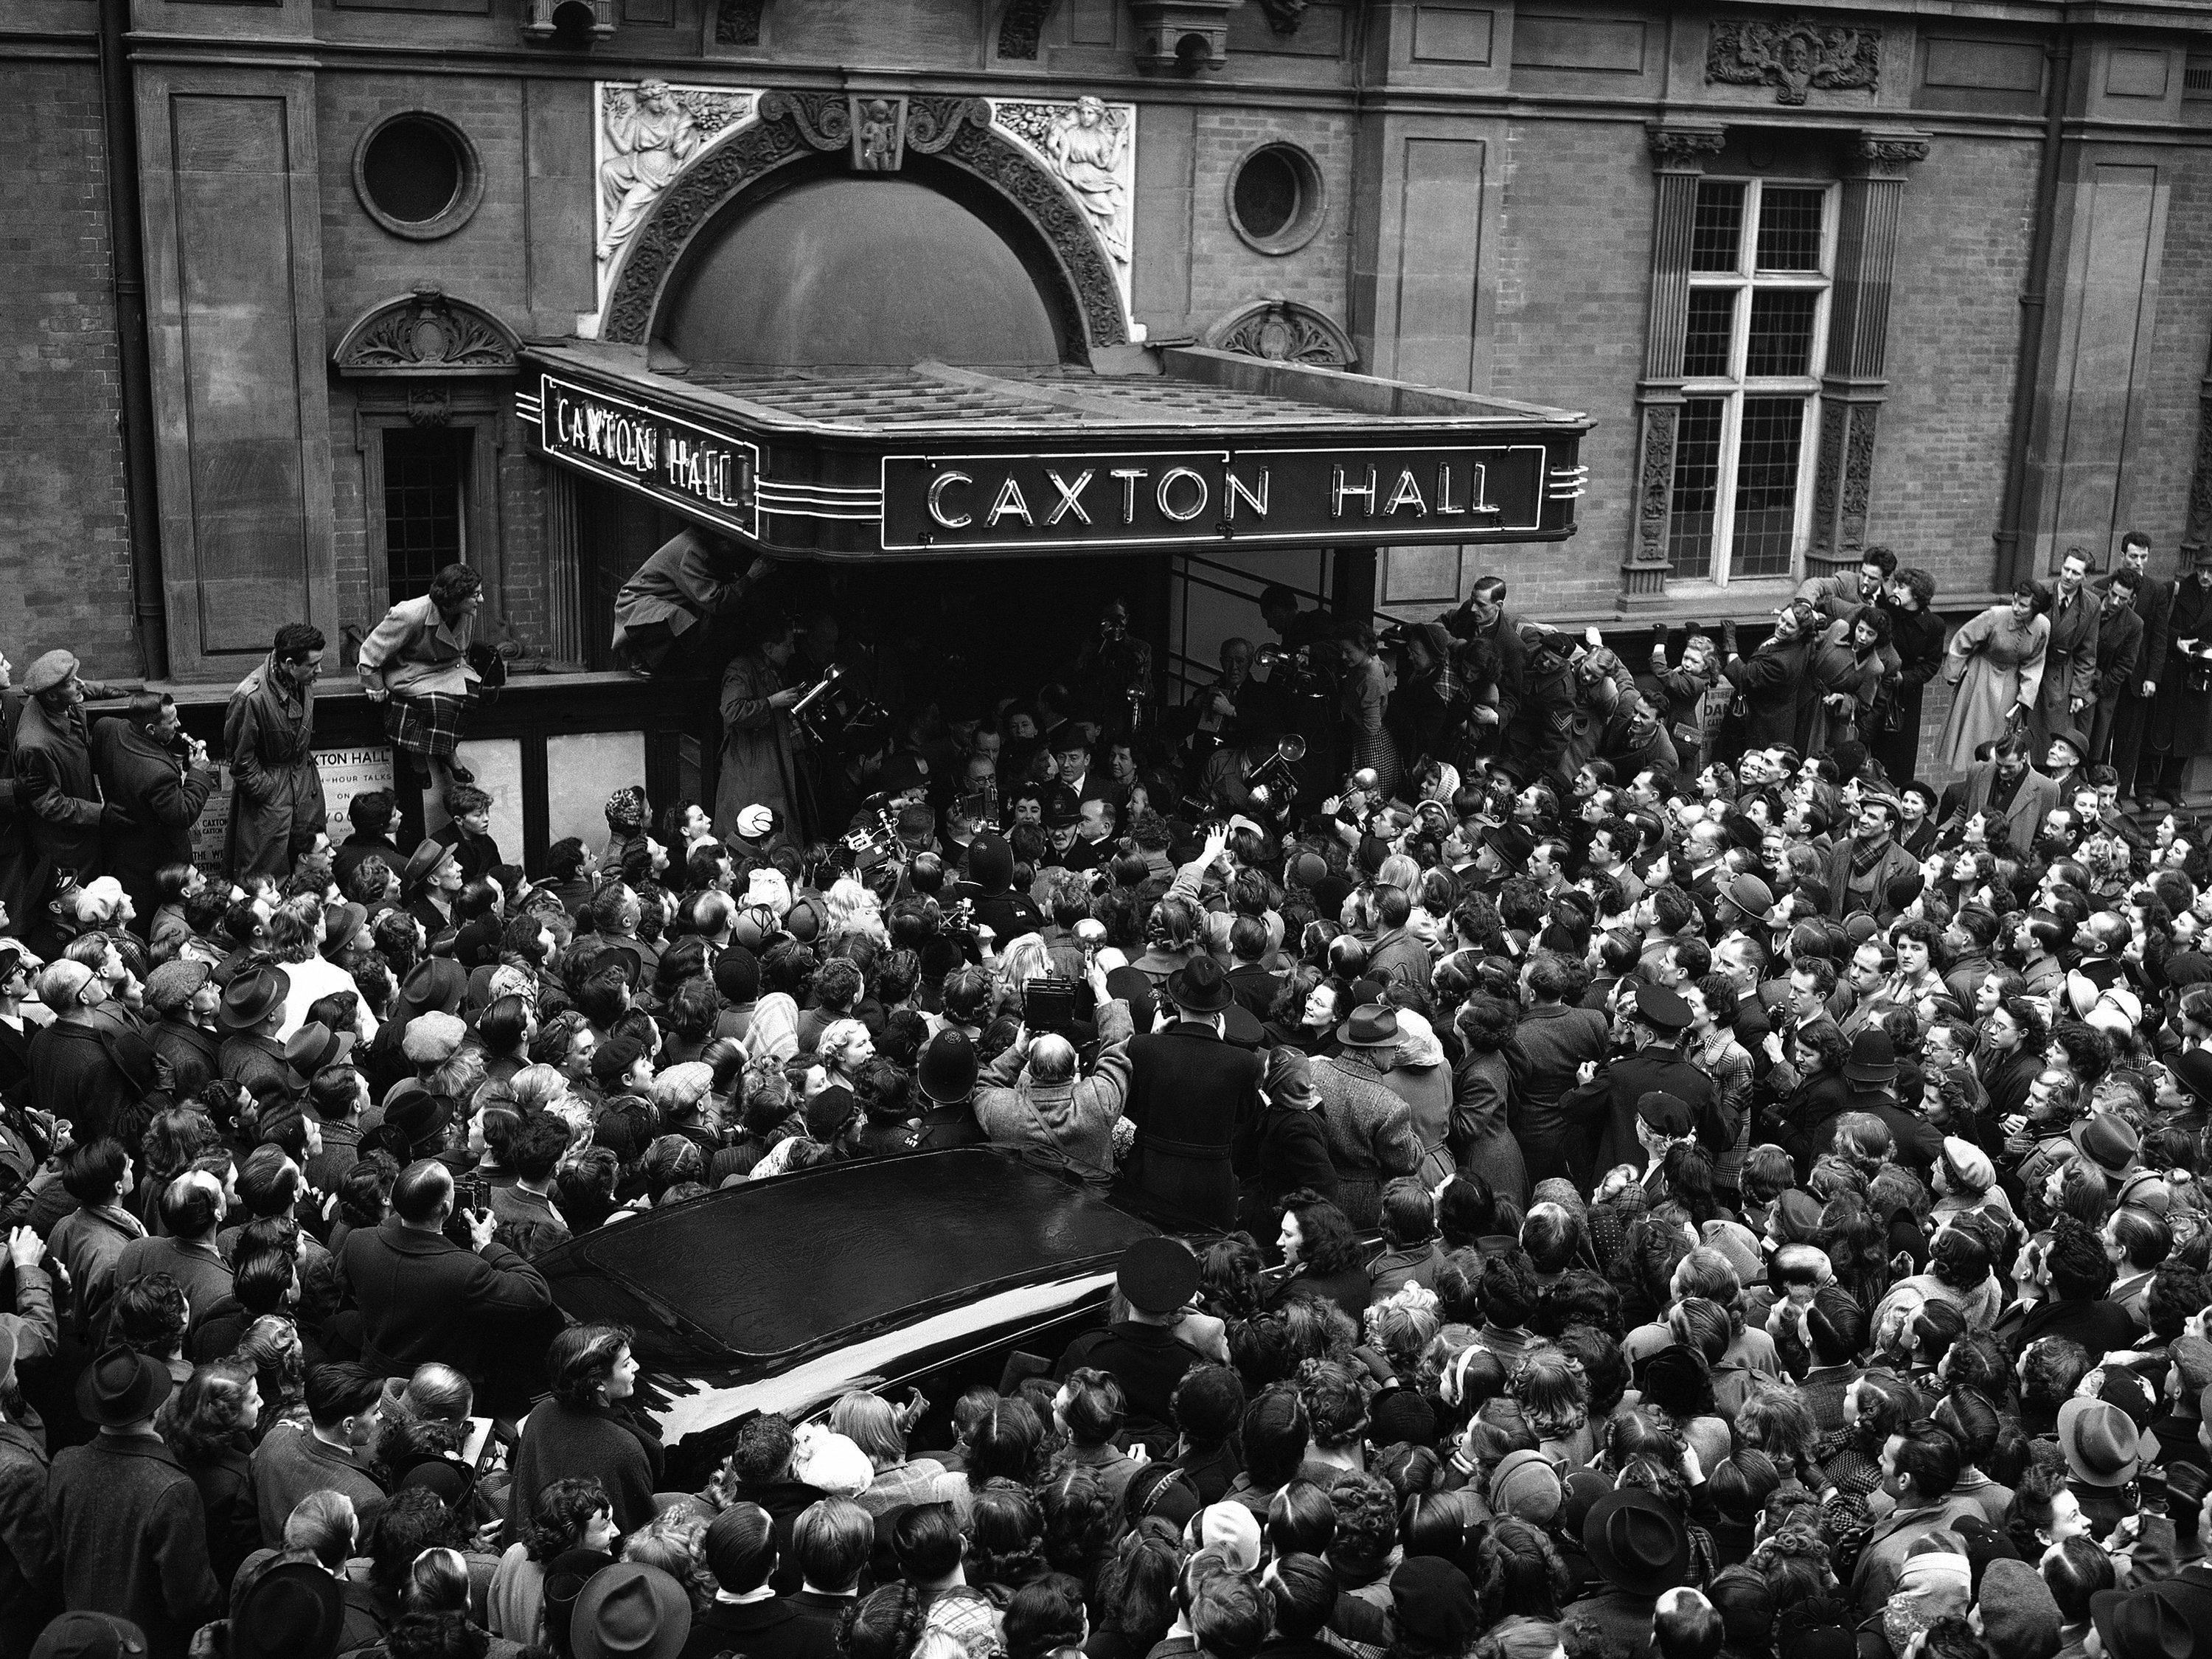 British screen star Elizabeth Taylor and her husband, English actor Michael Wilding stand at the door of London's Caxton Hall, United Kingdom before the huge crowd which massed to greet them after their wedding on the morning of Feb. 21, 1952. (AP Photo)